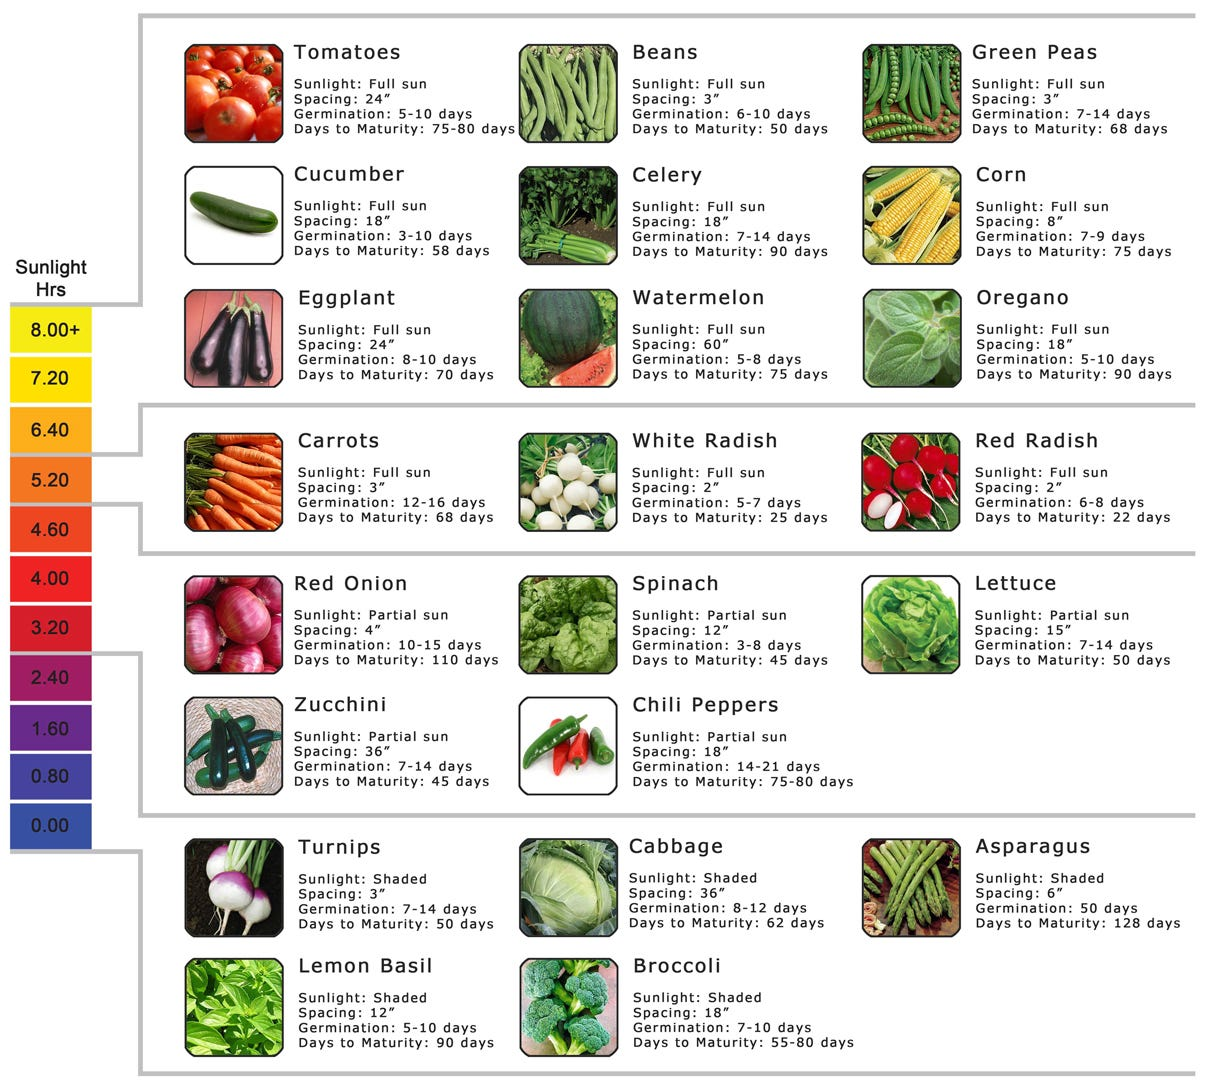 sunlight requirement for various hydroponic crops